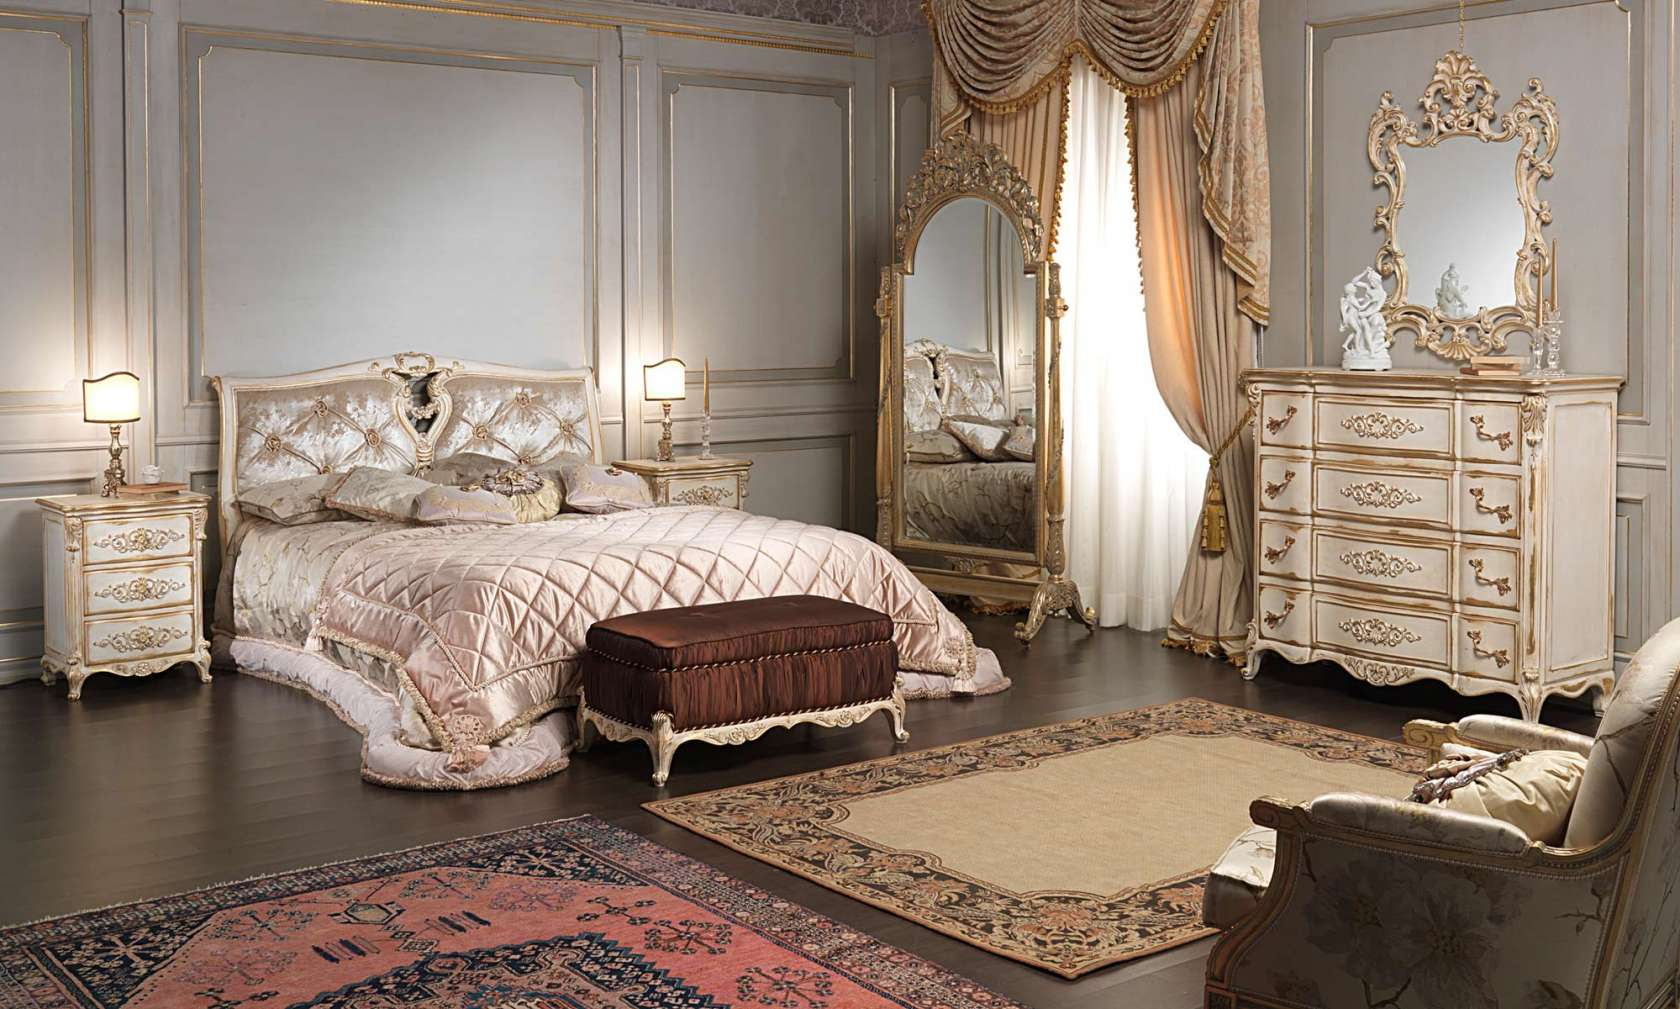 Classic Louis XVI Bedroom Bed Padded Bench Chest Of Drawers Night Table Wall Mirror And